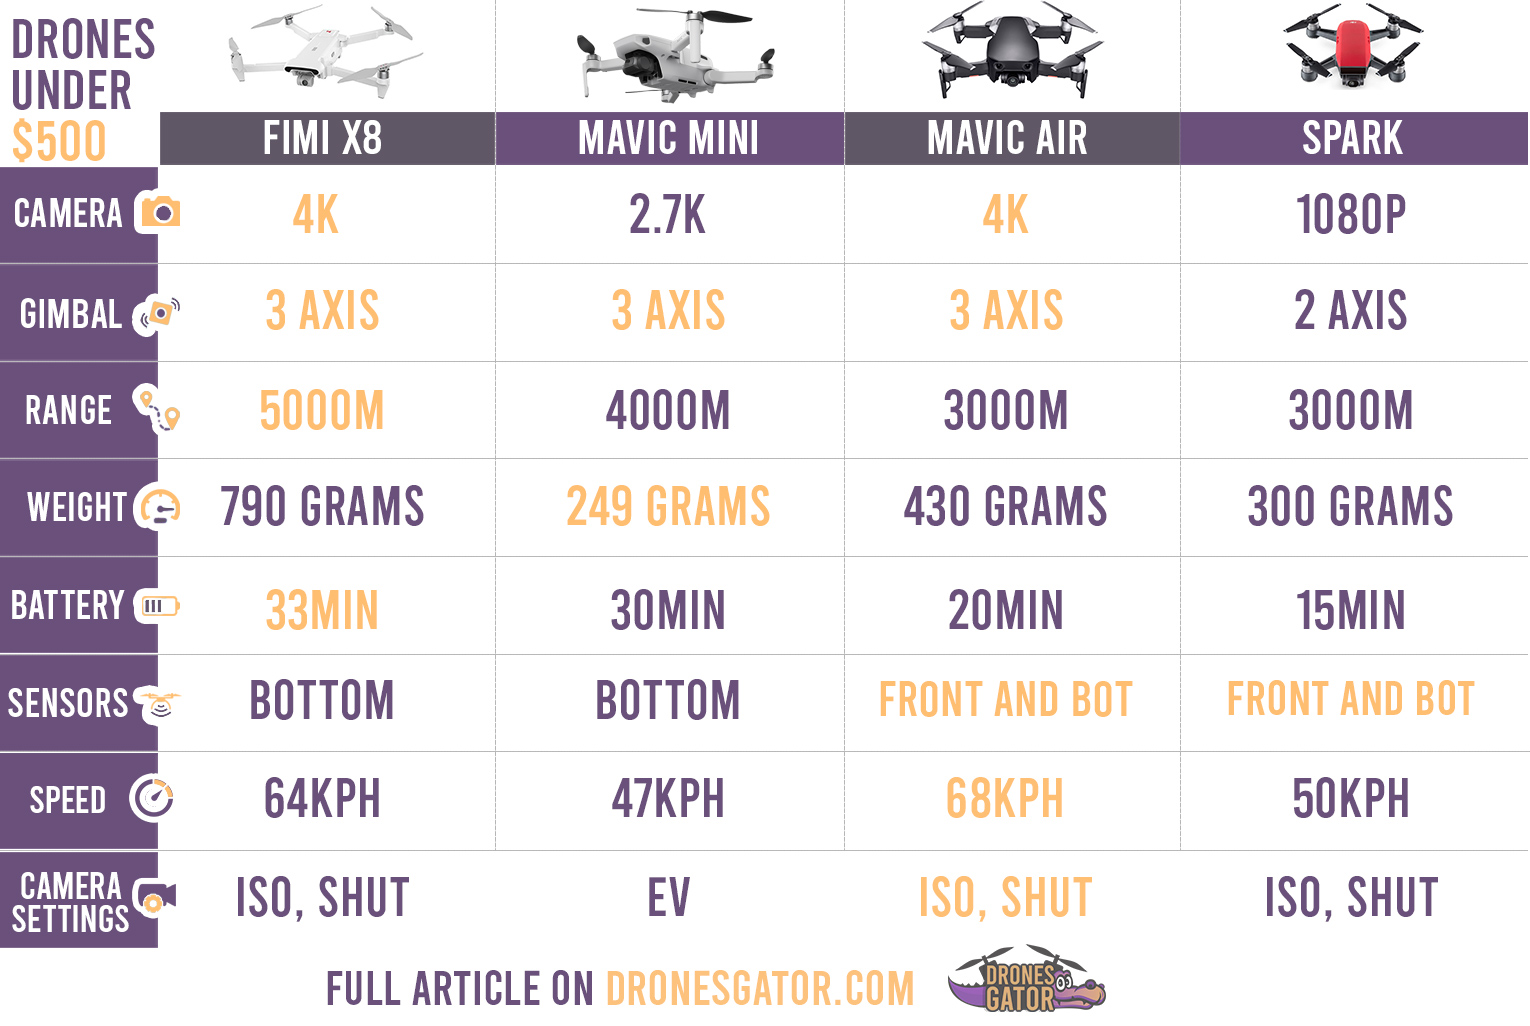 DJI-Mavic-Mini-vs-xiaomi-fimi-x8-vs-mavic-air-vs-dji-spark-comparison-table.jpg